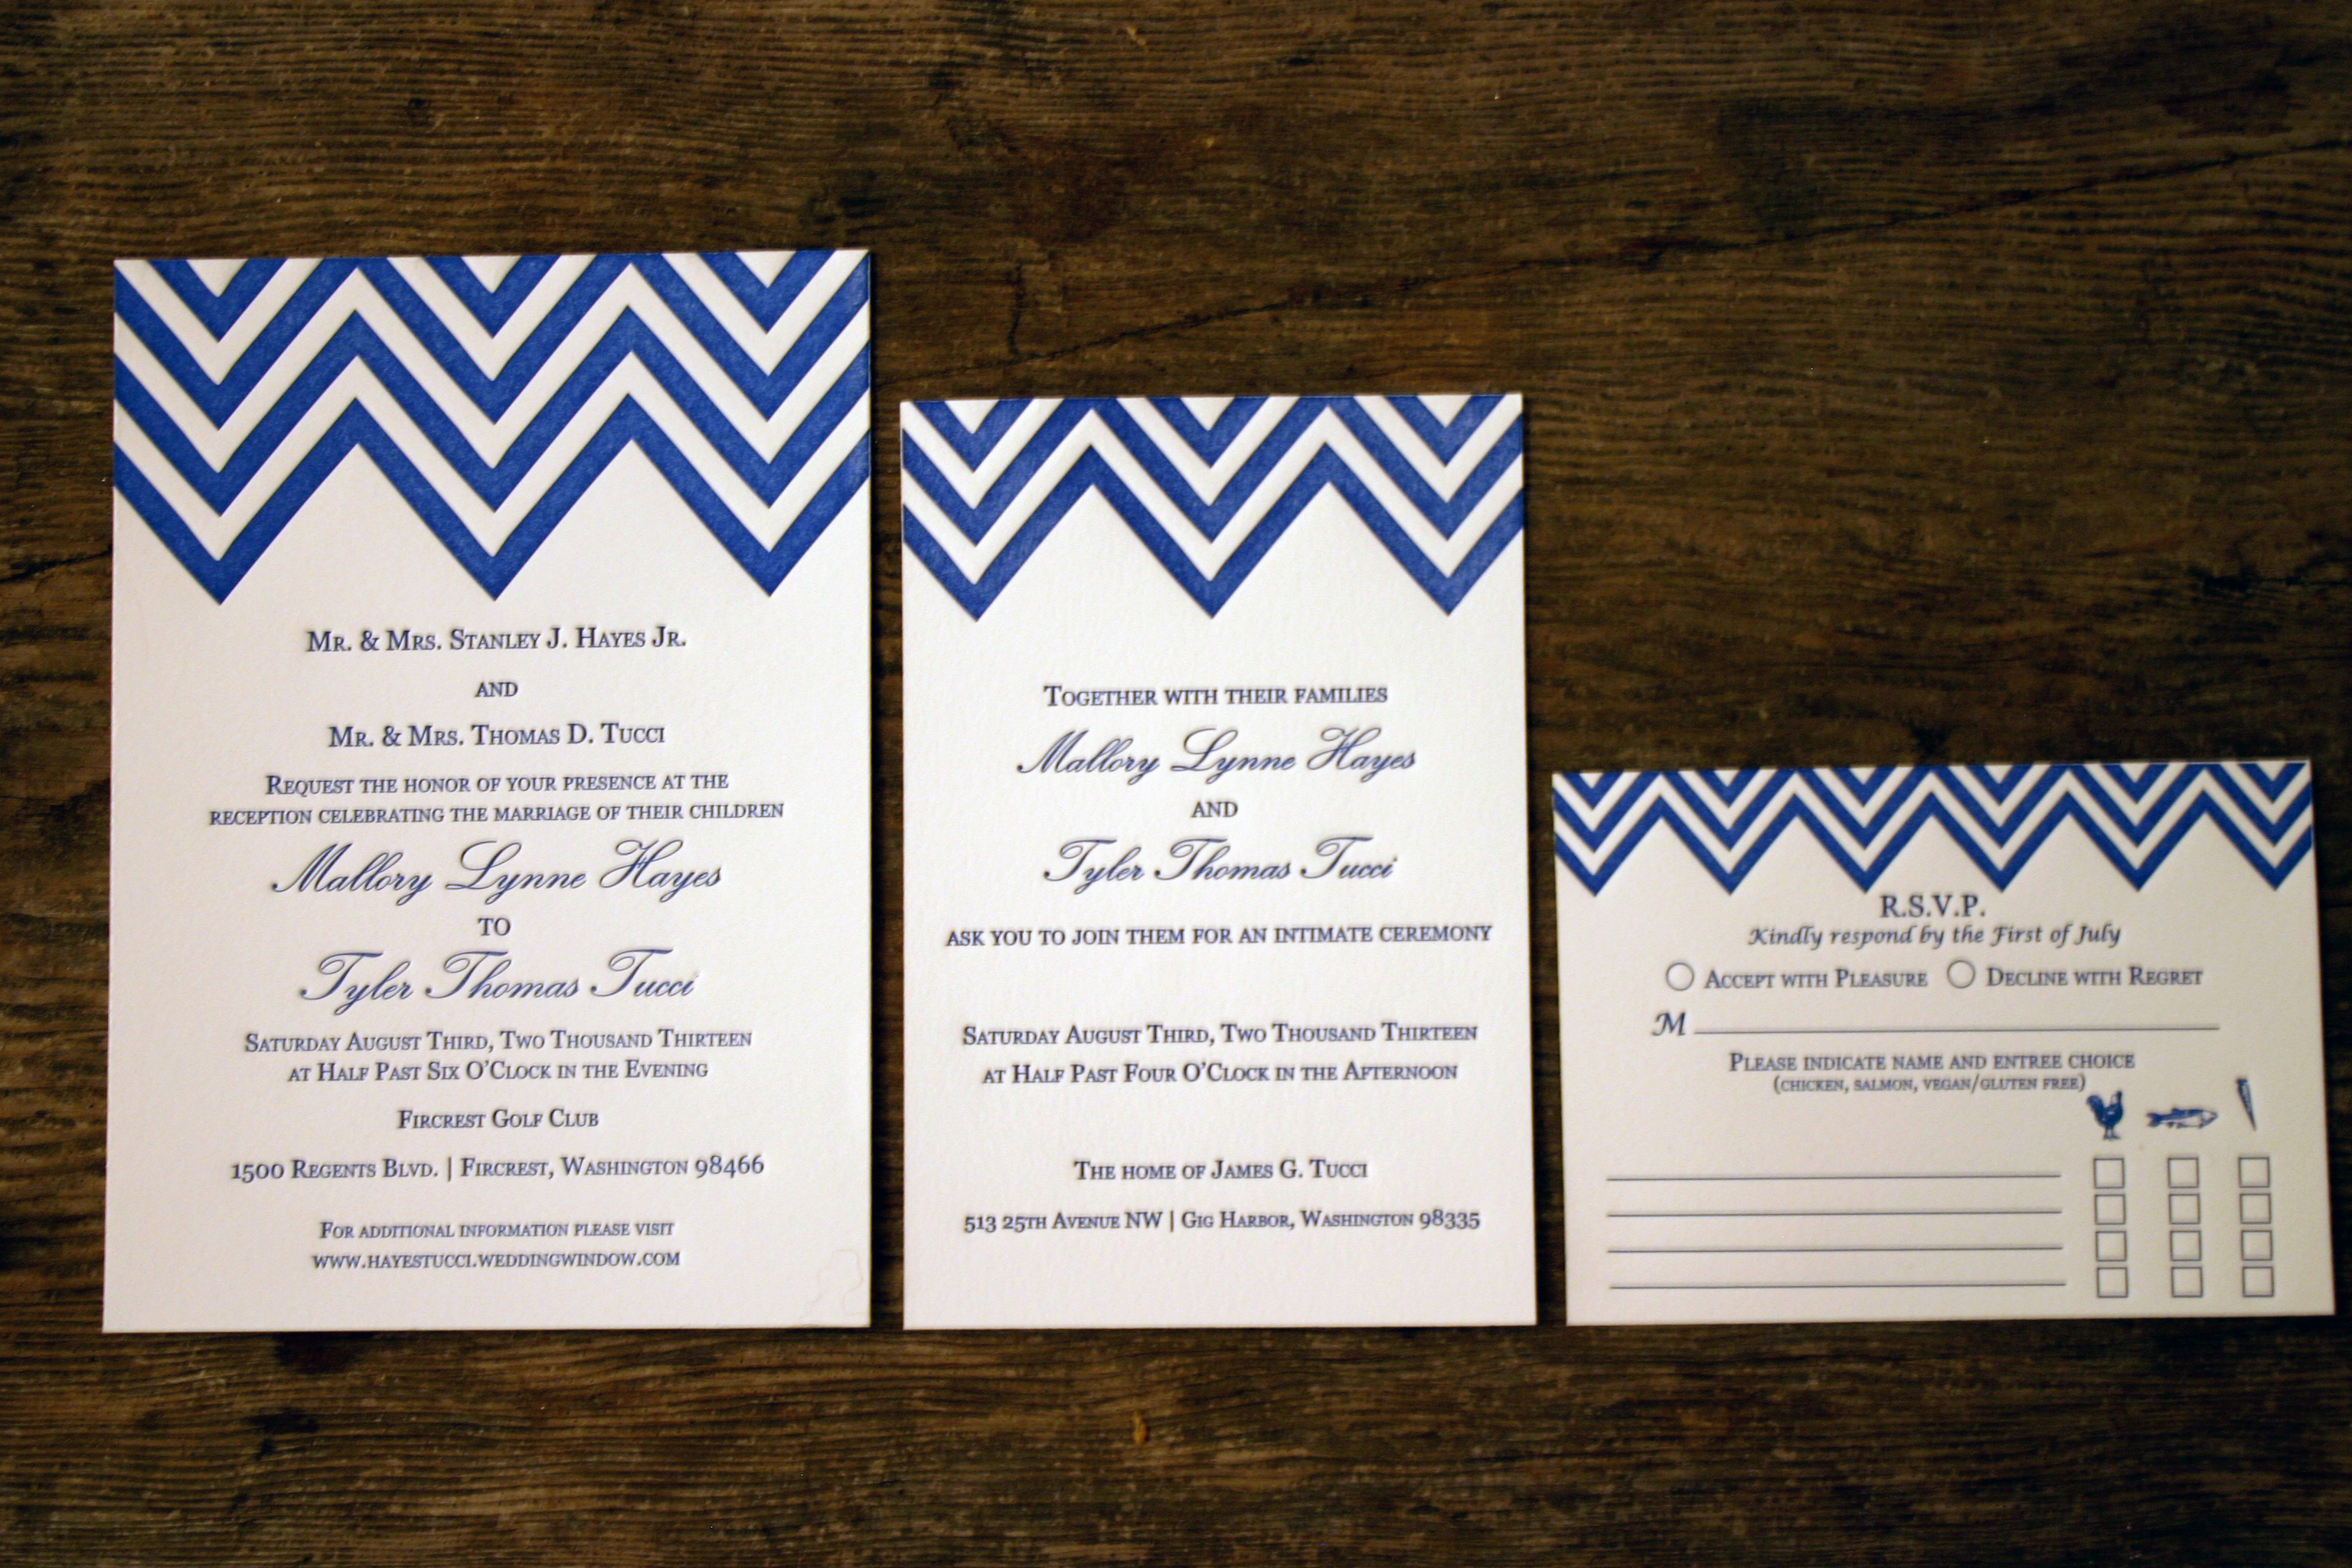 wedding invitations thermography vs letterpress letterpress wedding invitations chevron stripes chevron wedding invitation letterpress wedding invitation